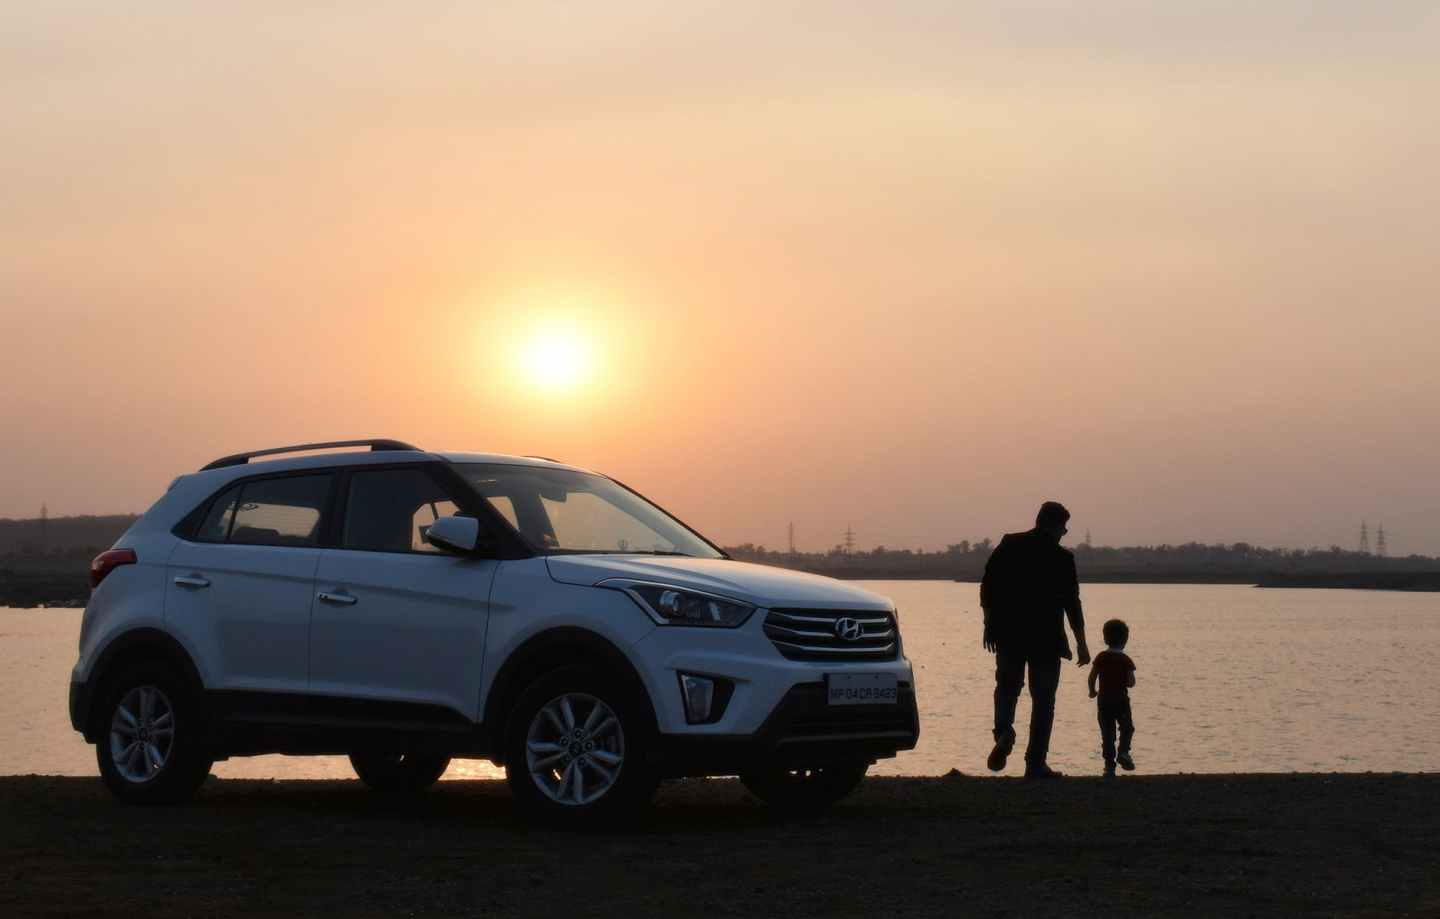 silhouette of man and child near white hyundai tucson suv during golden hour